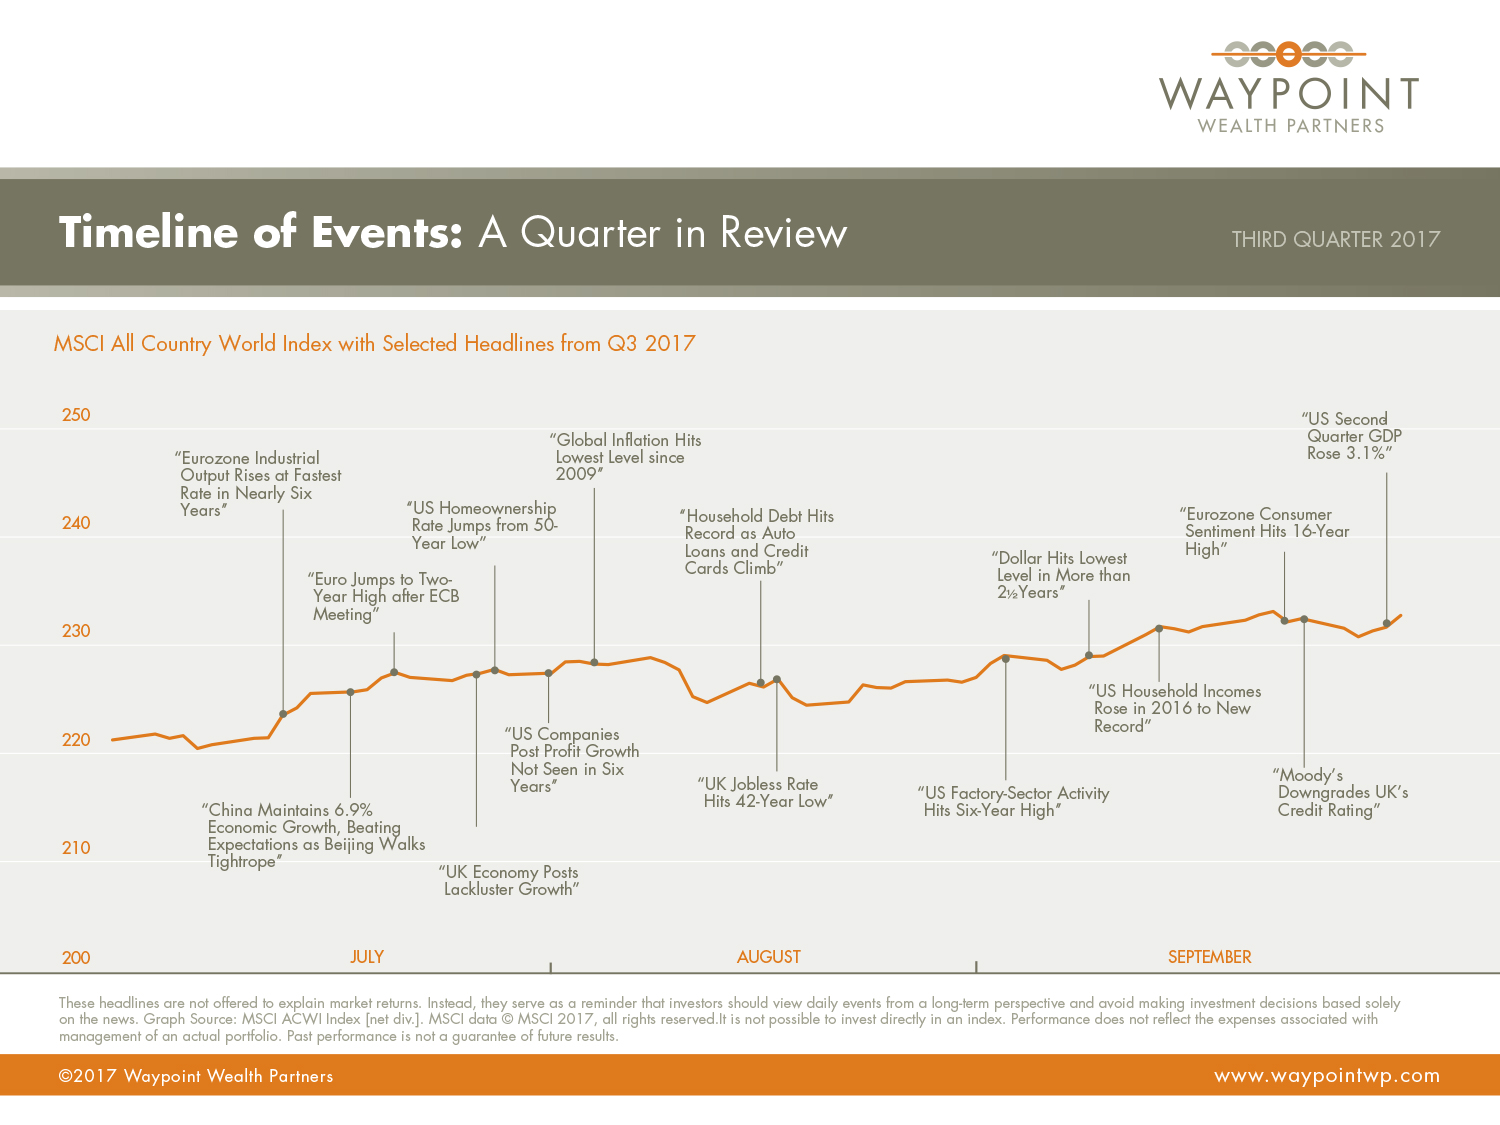 WWP-QMR-Q3-2017-Timeline-of-Events.jpg